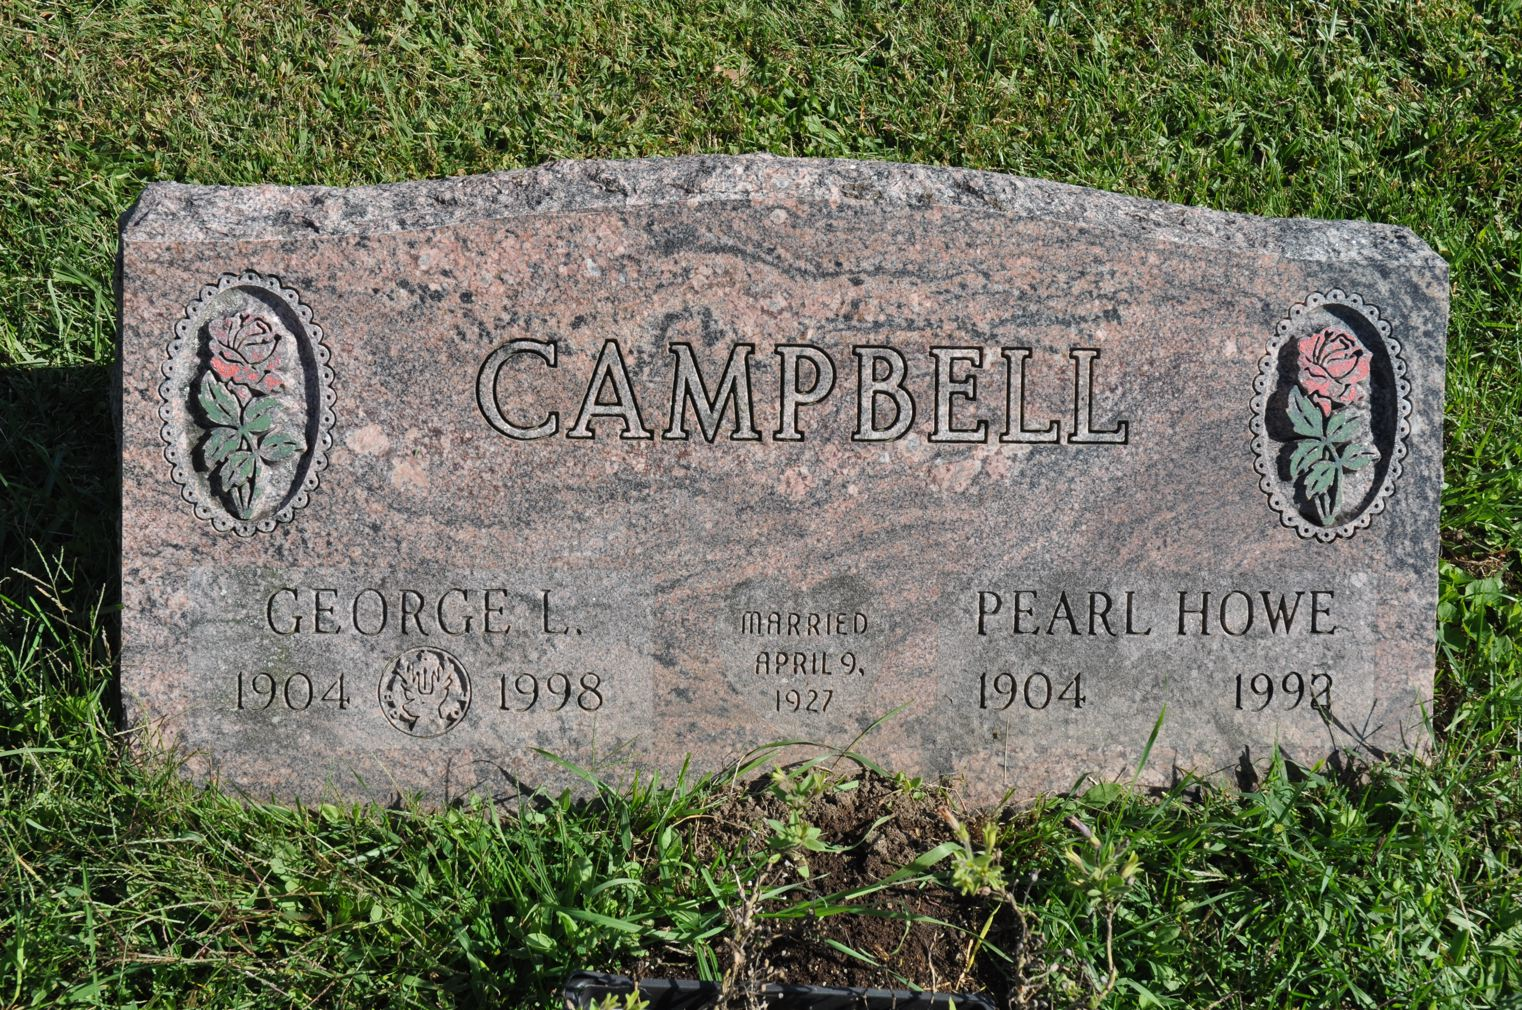 George L. Campbell